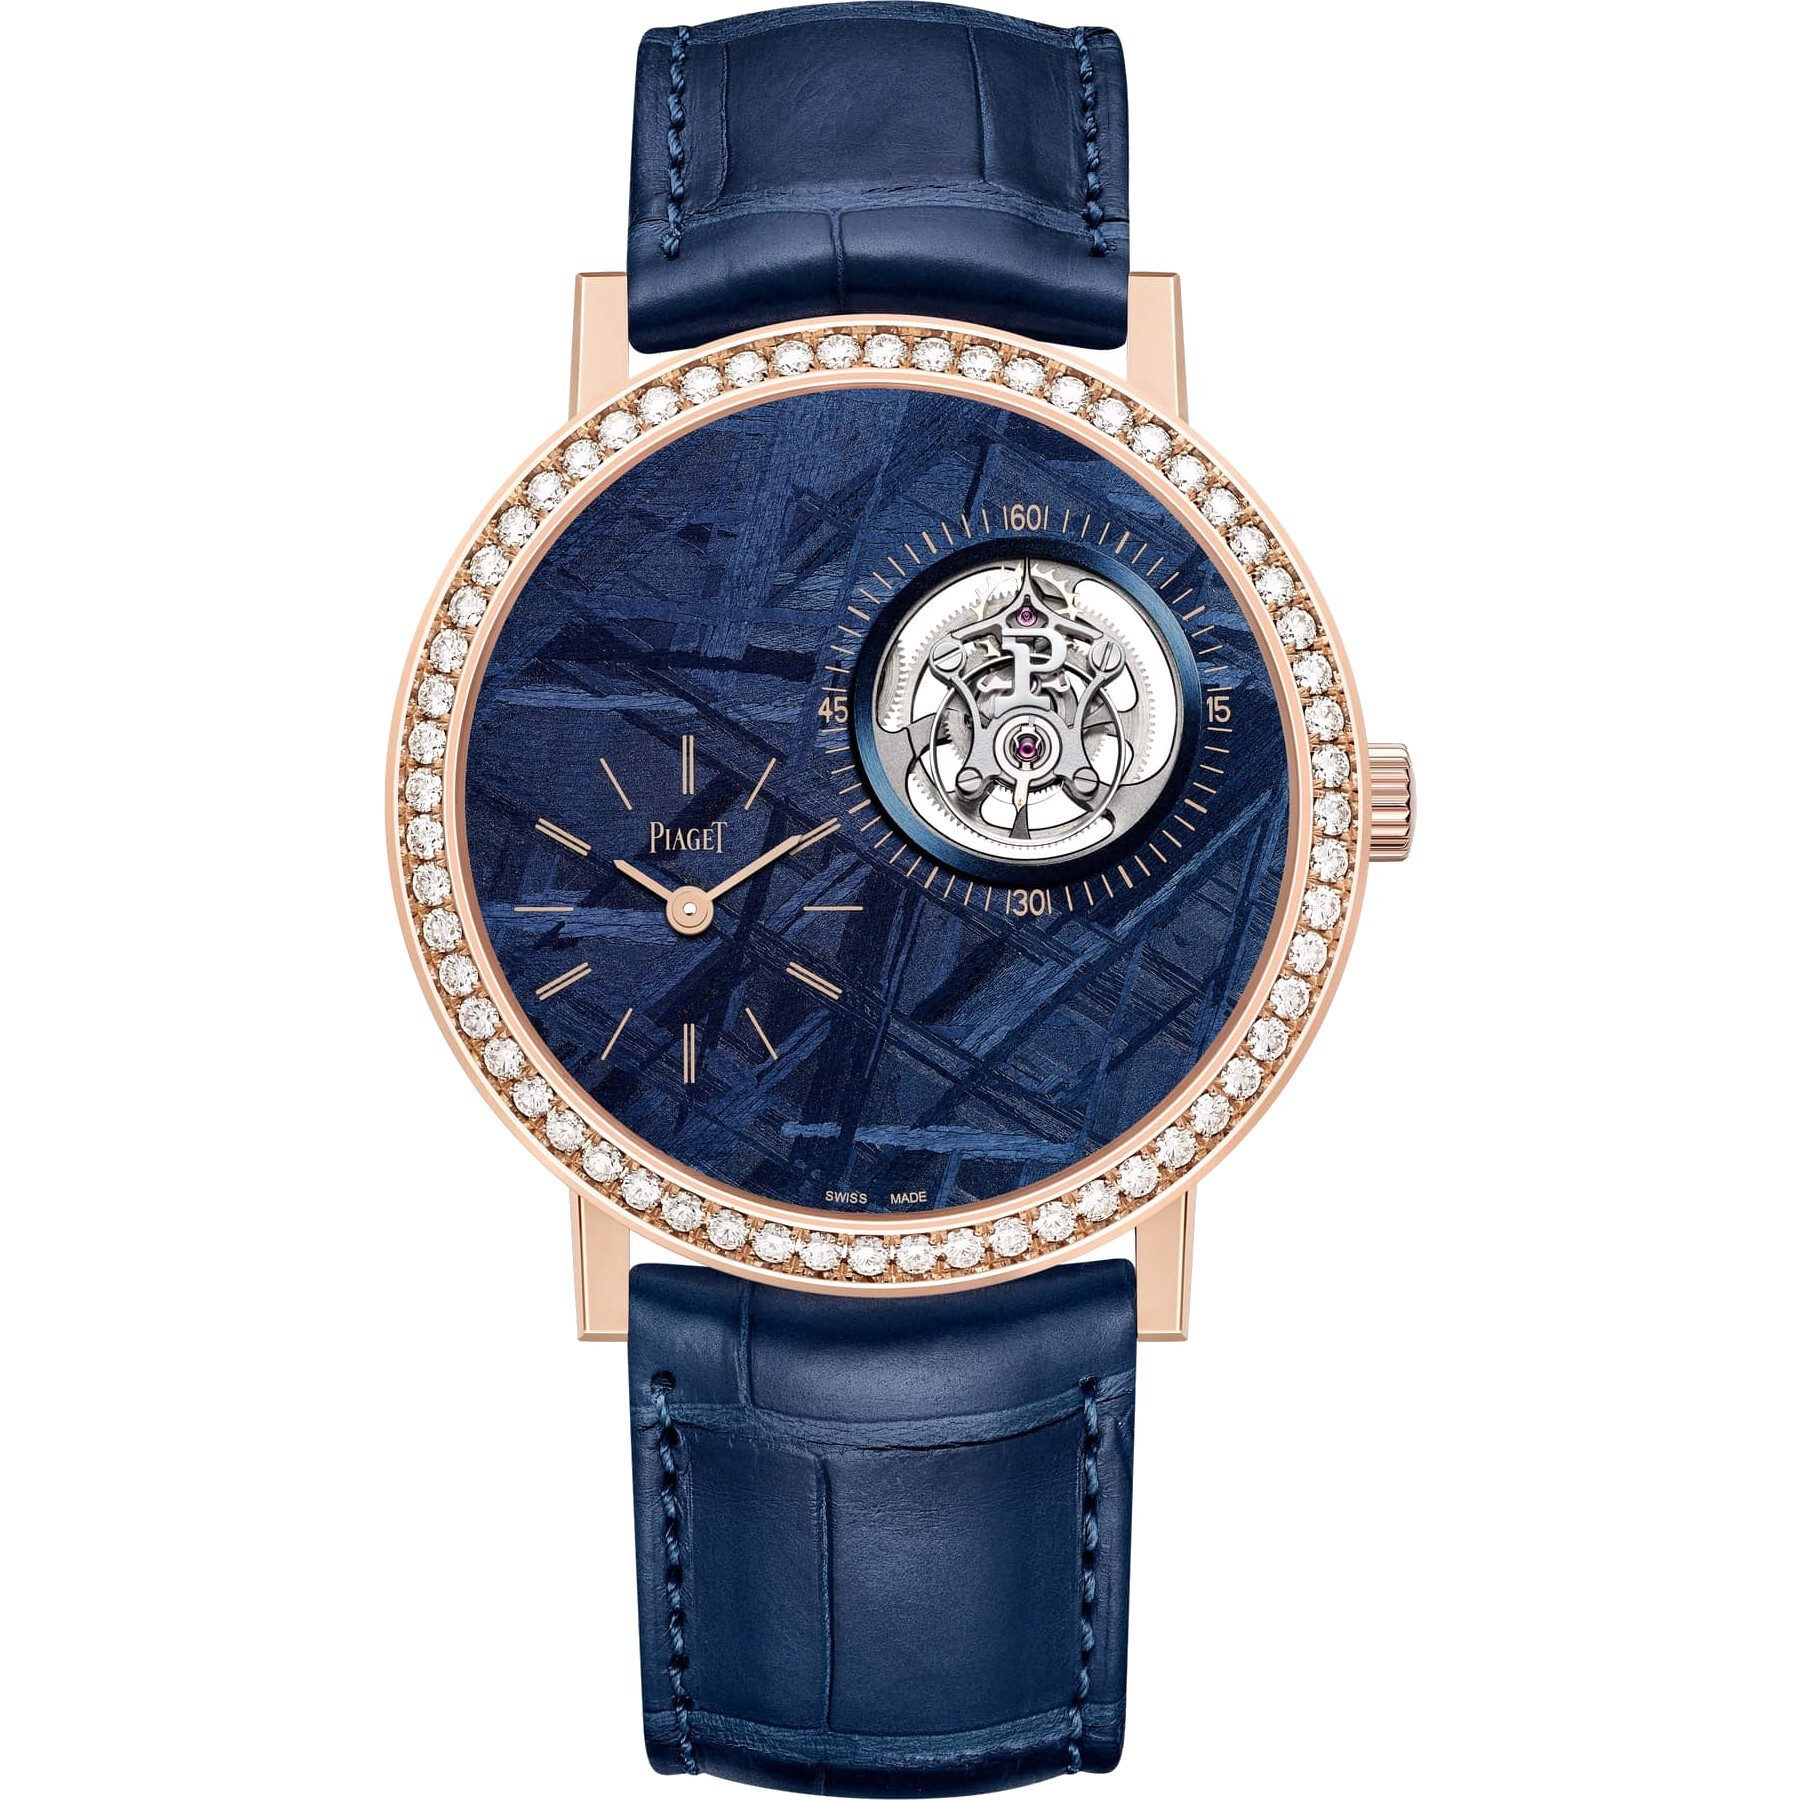 Piaget Altiplano Tourbillon G0A44052 Limited Watch 41